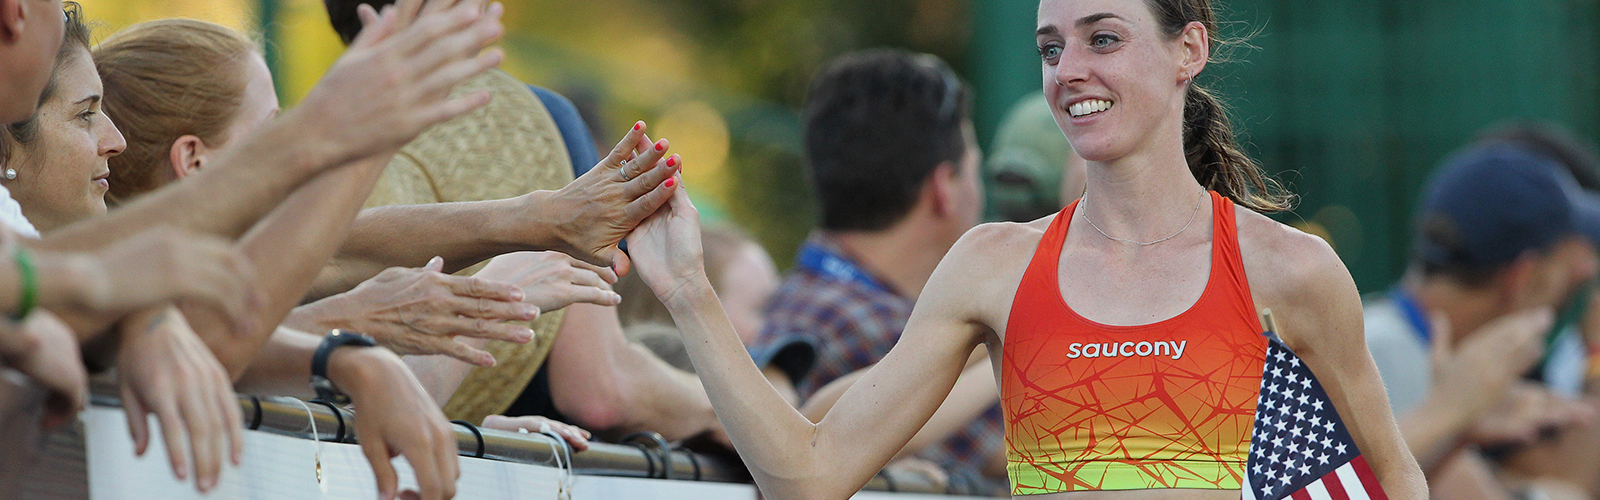 Woman giving high fives at the end of a race